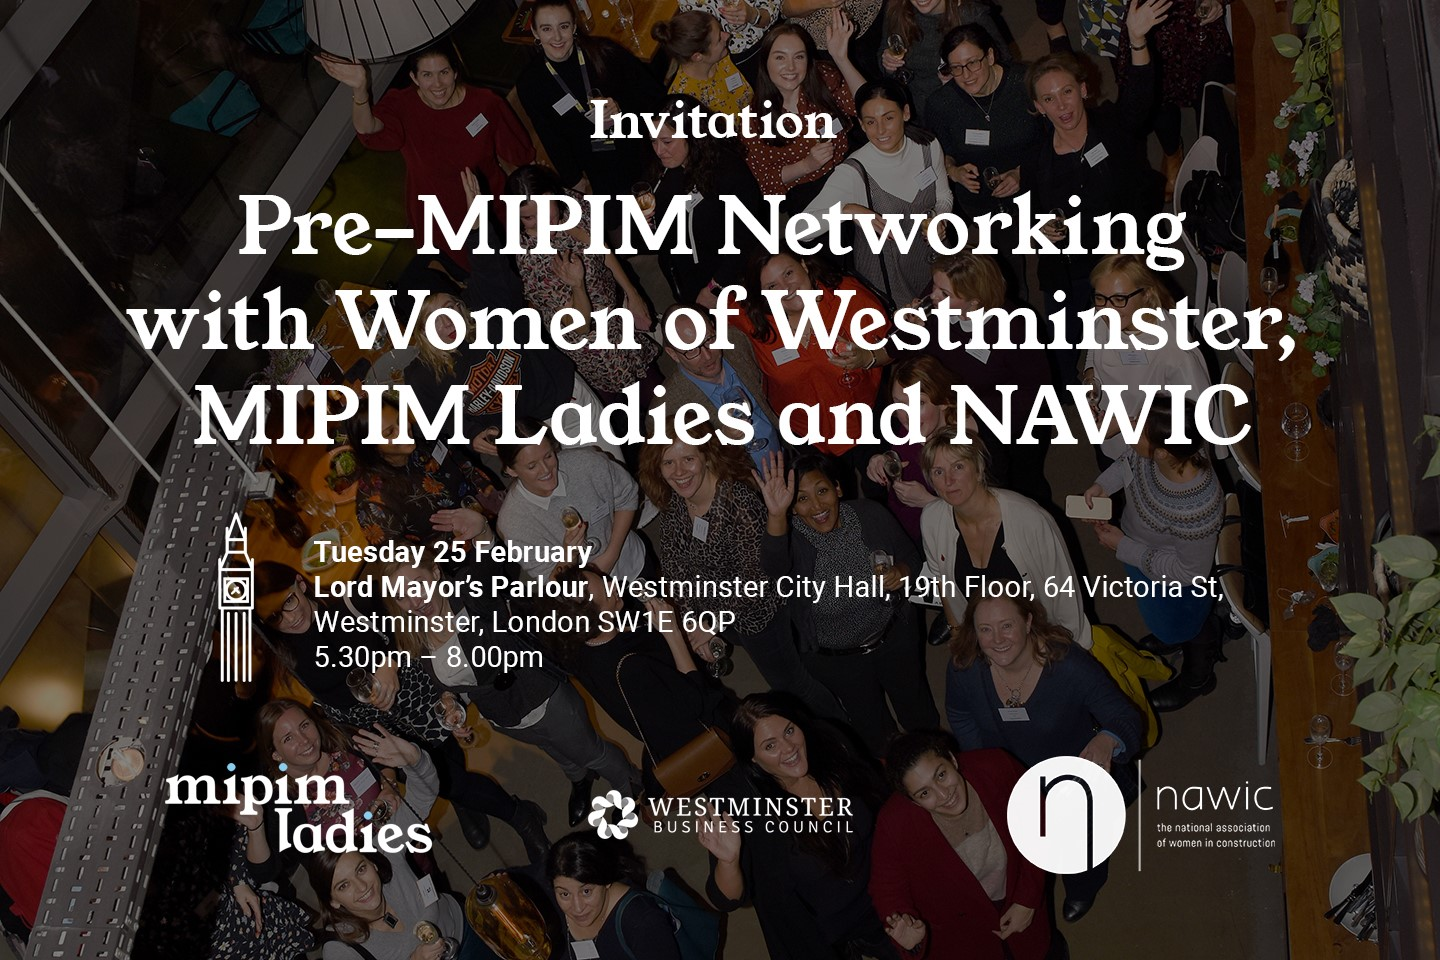 Hamlins sponsor Pre-MIPIM Networking with Women of Westminster, MIPIM Ladies and NAWIC